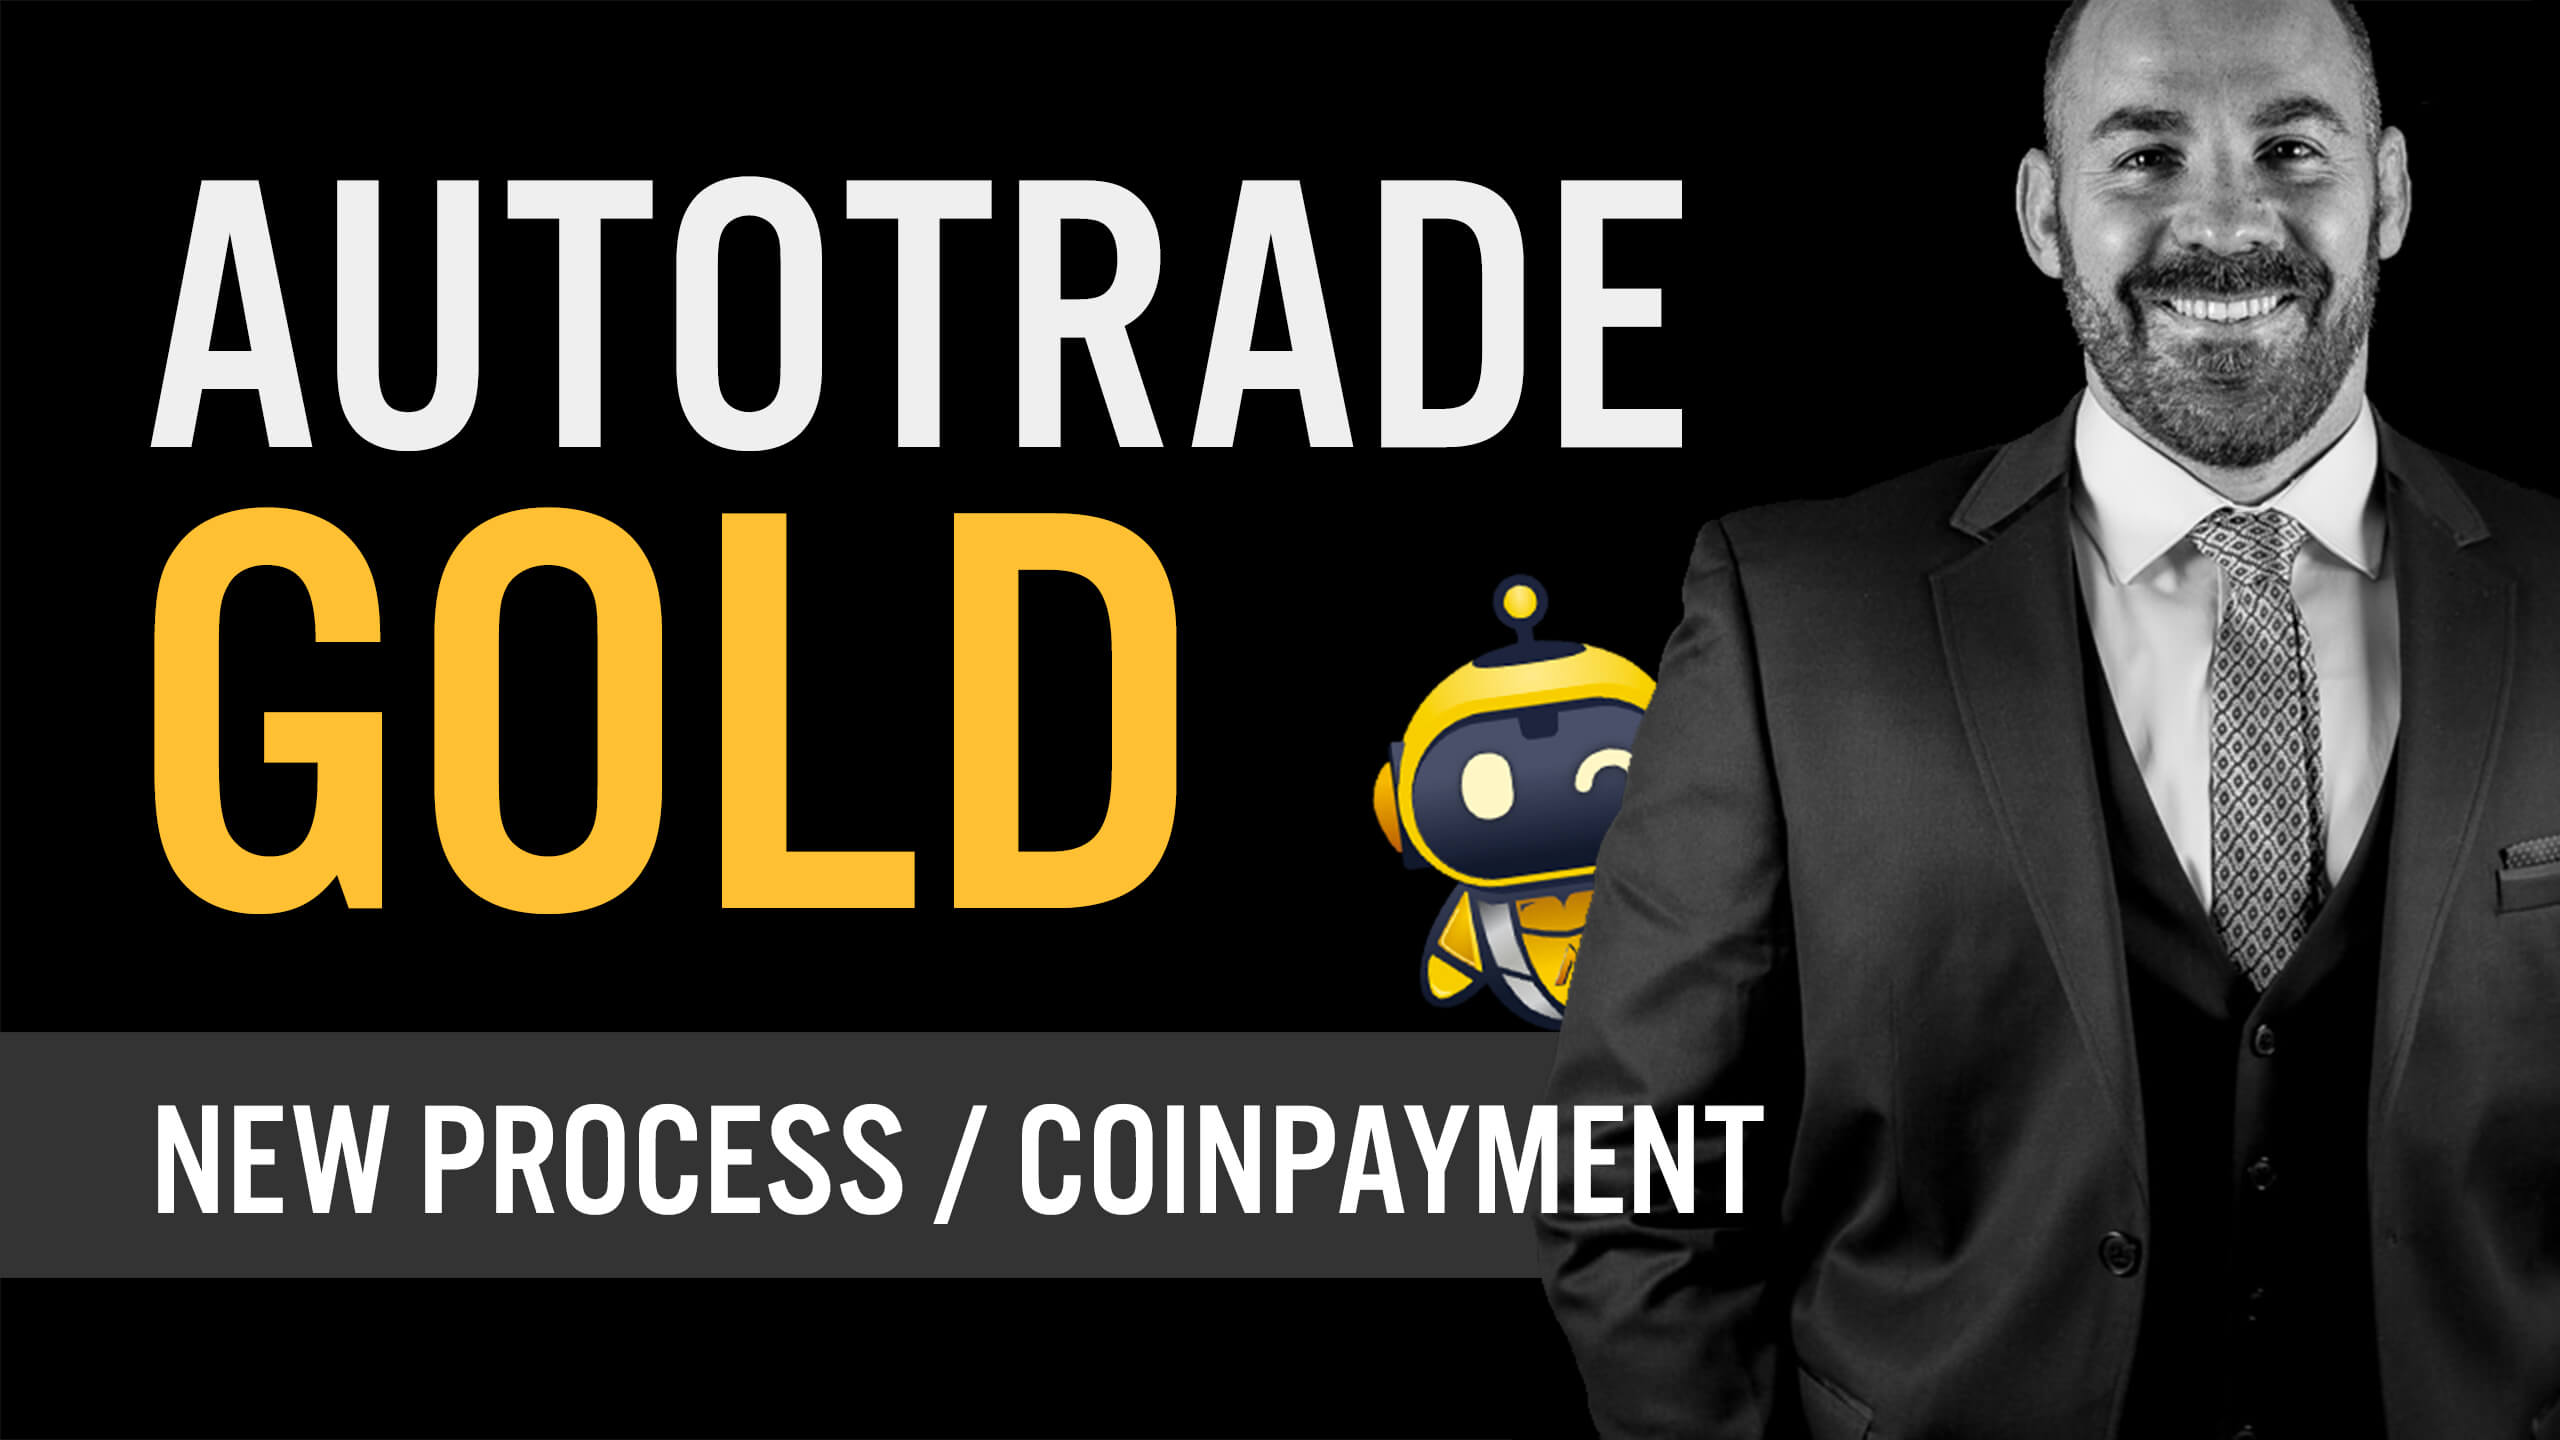 AutoTrade Gold Youtube Video Tutorial